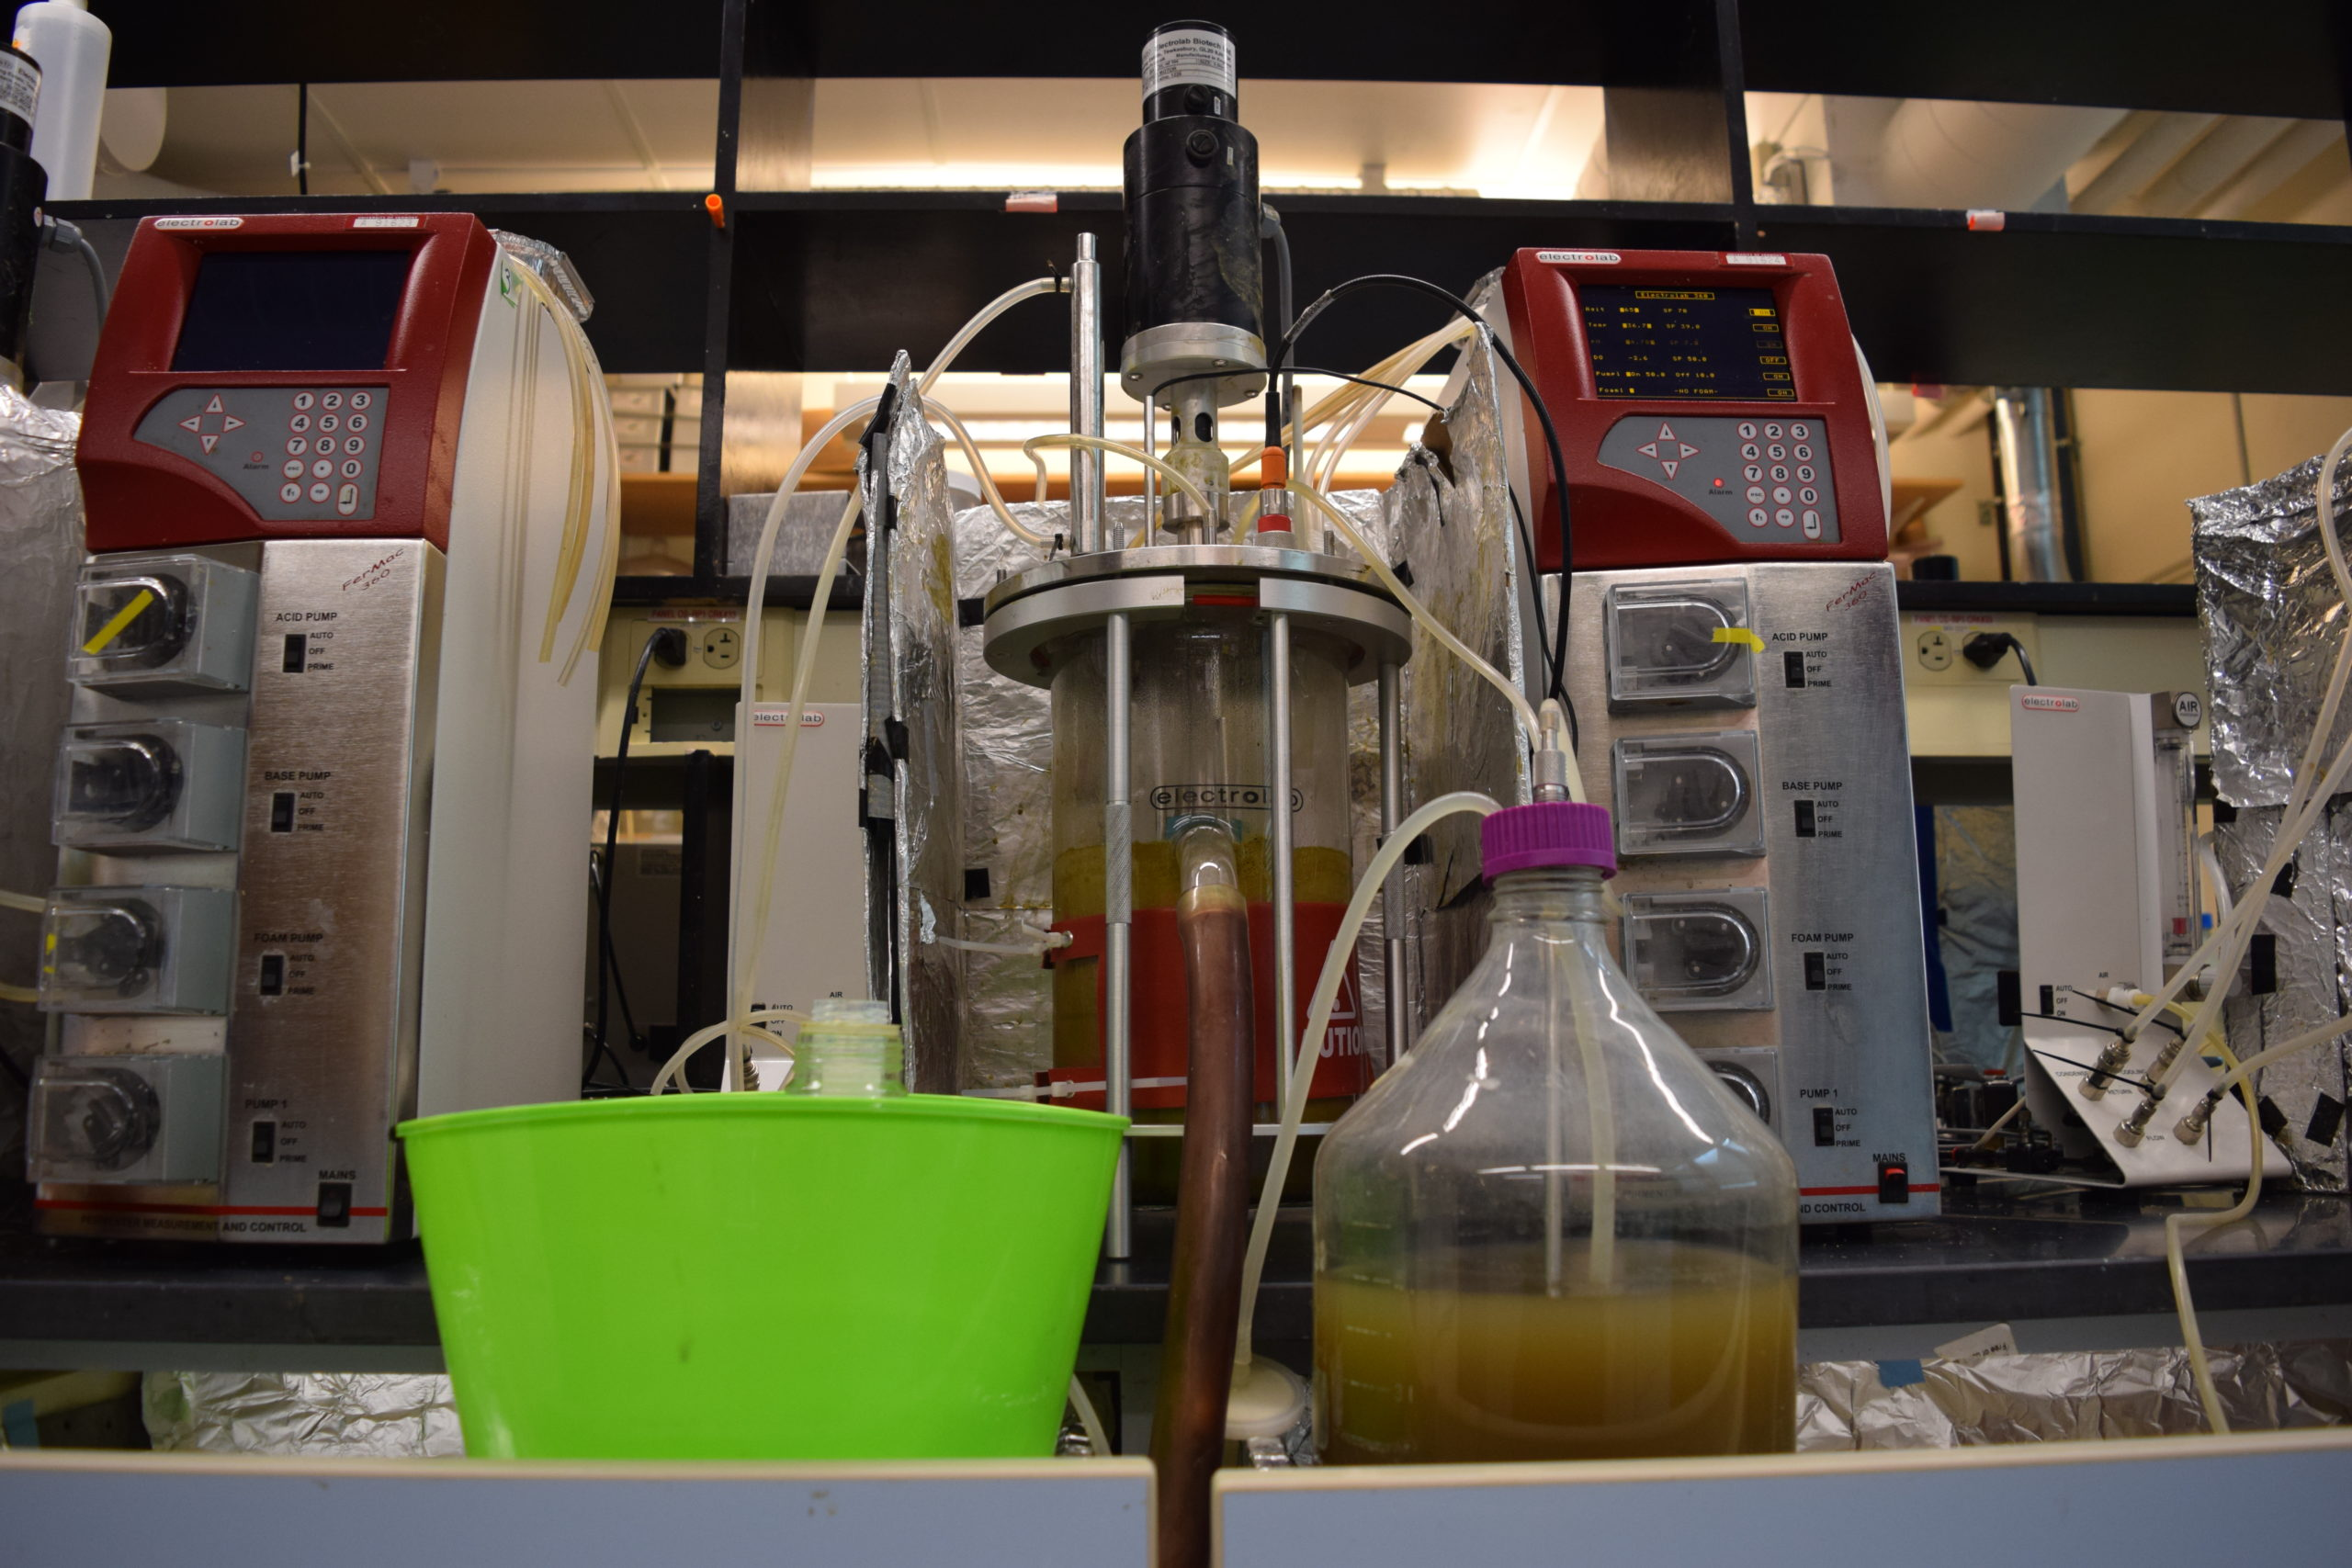 Cow seaweed research test fermenters